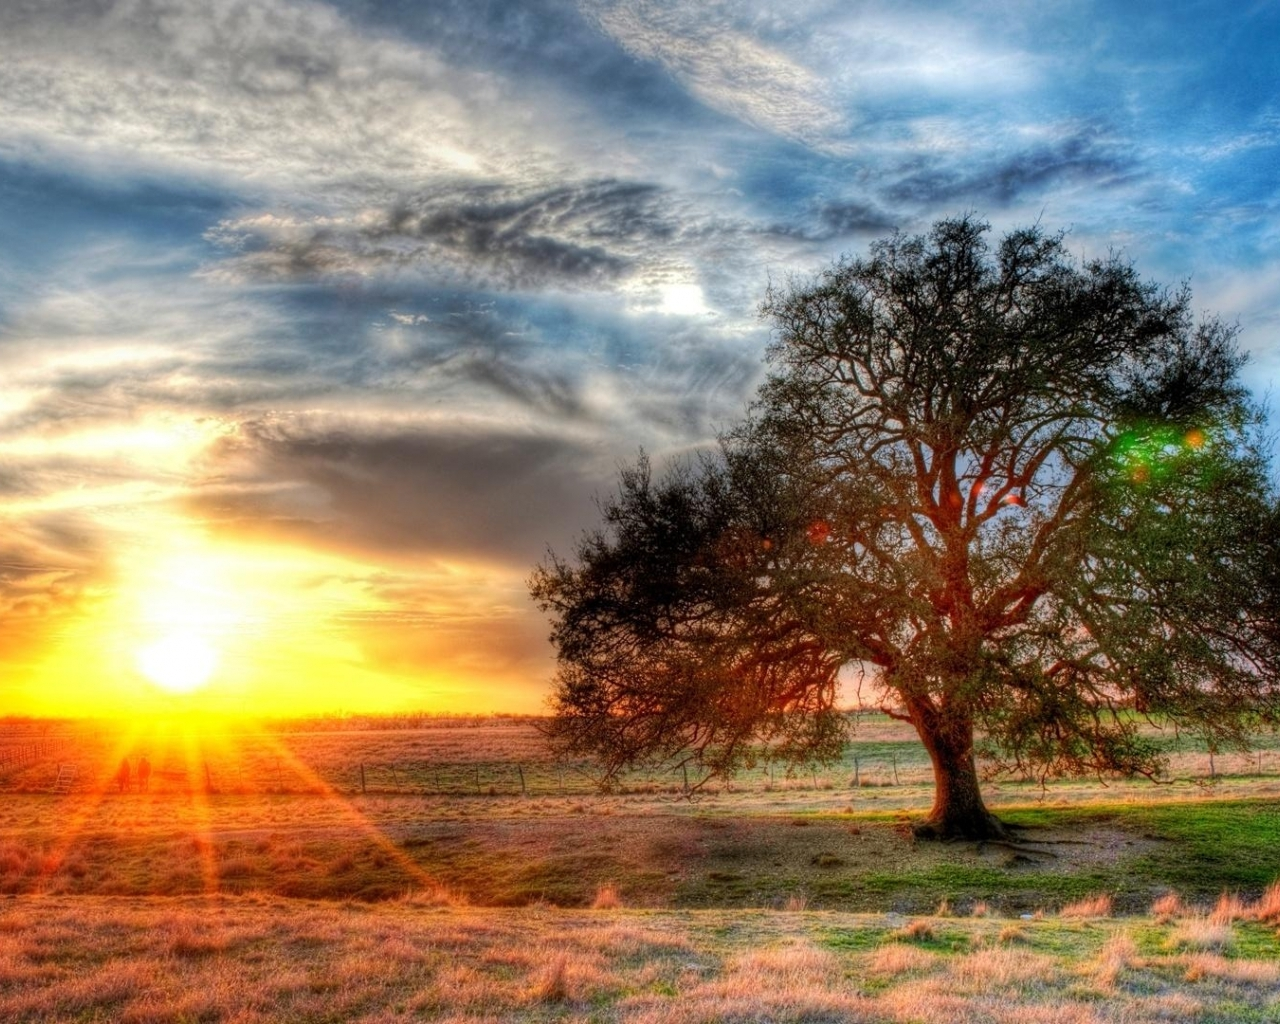 Sunset on a Texas farm Hdr wallpaper 1280x1024